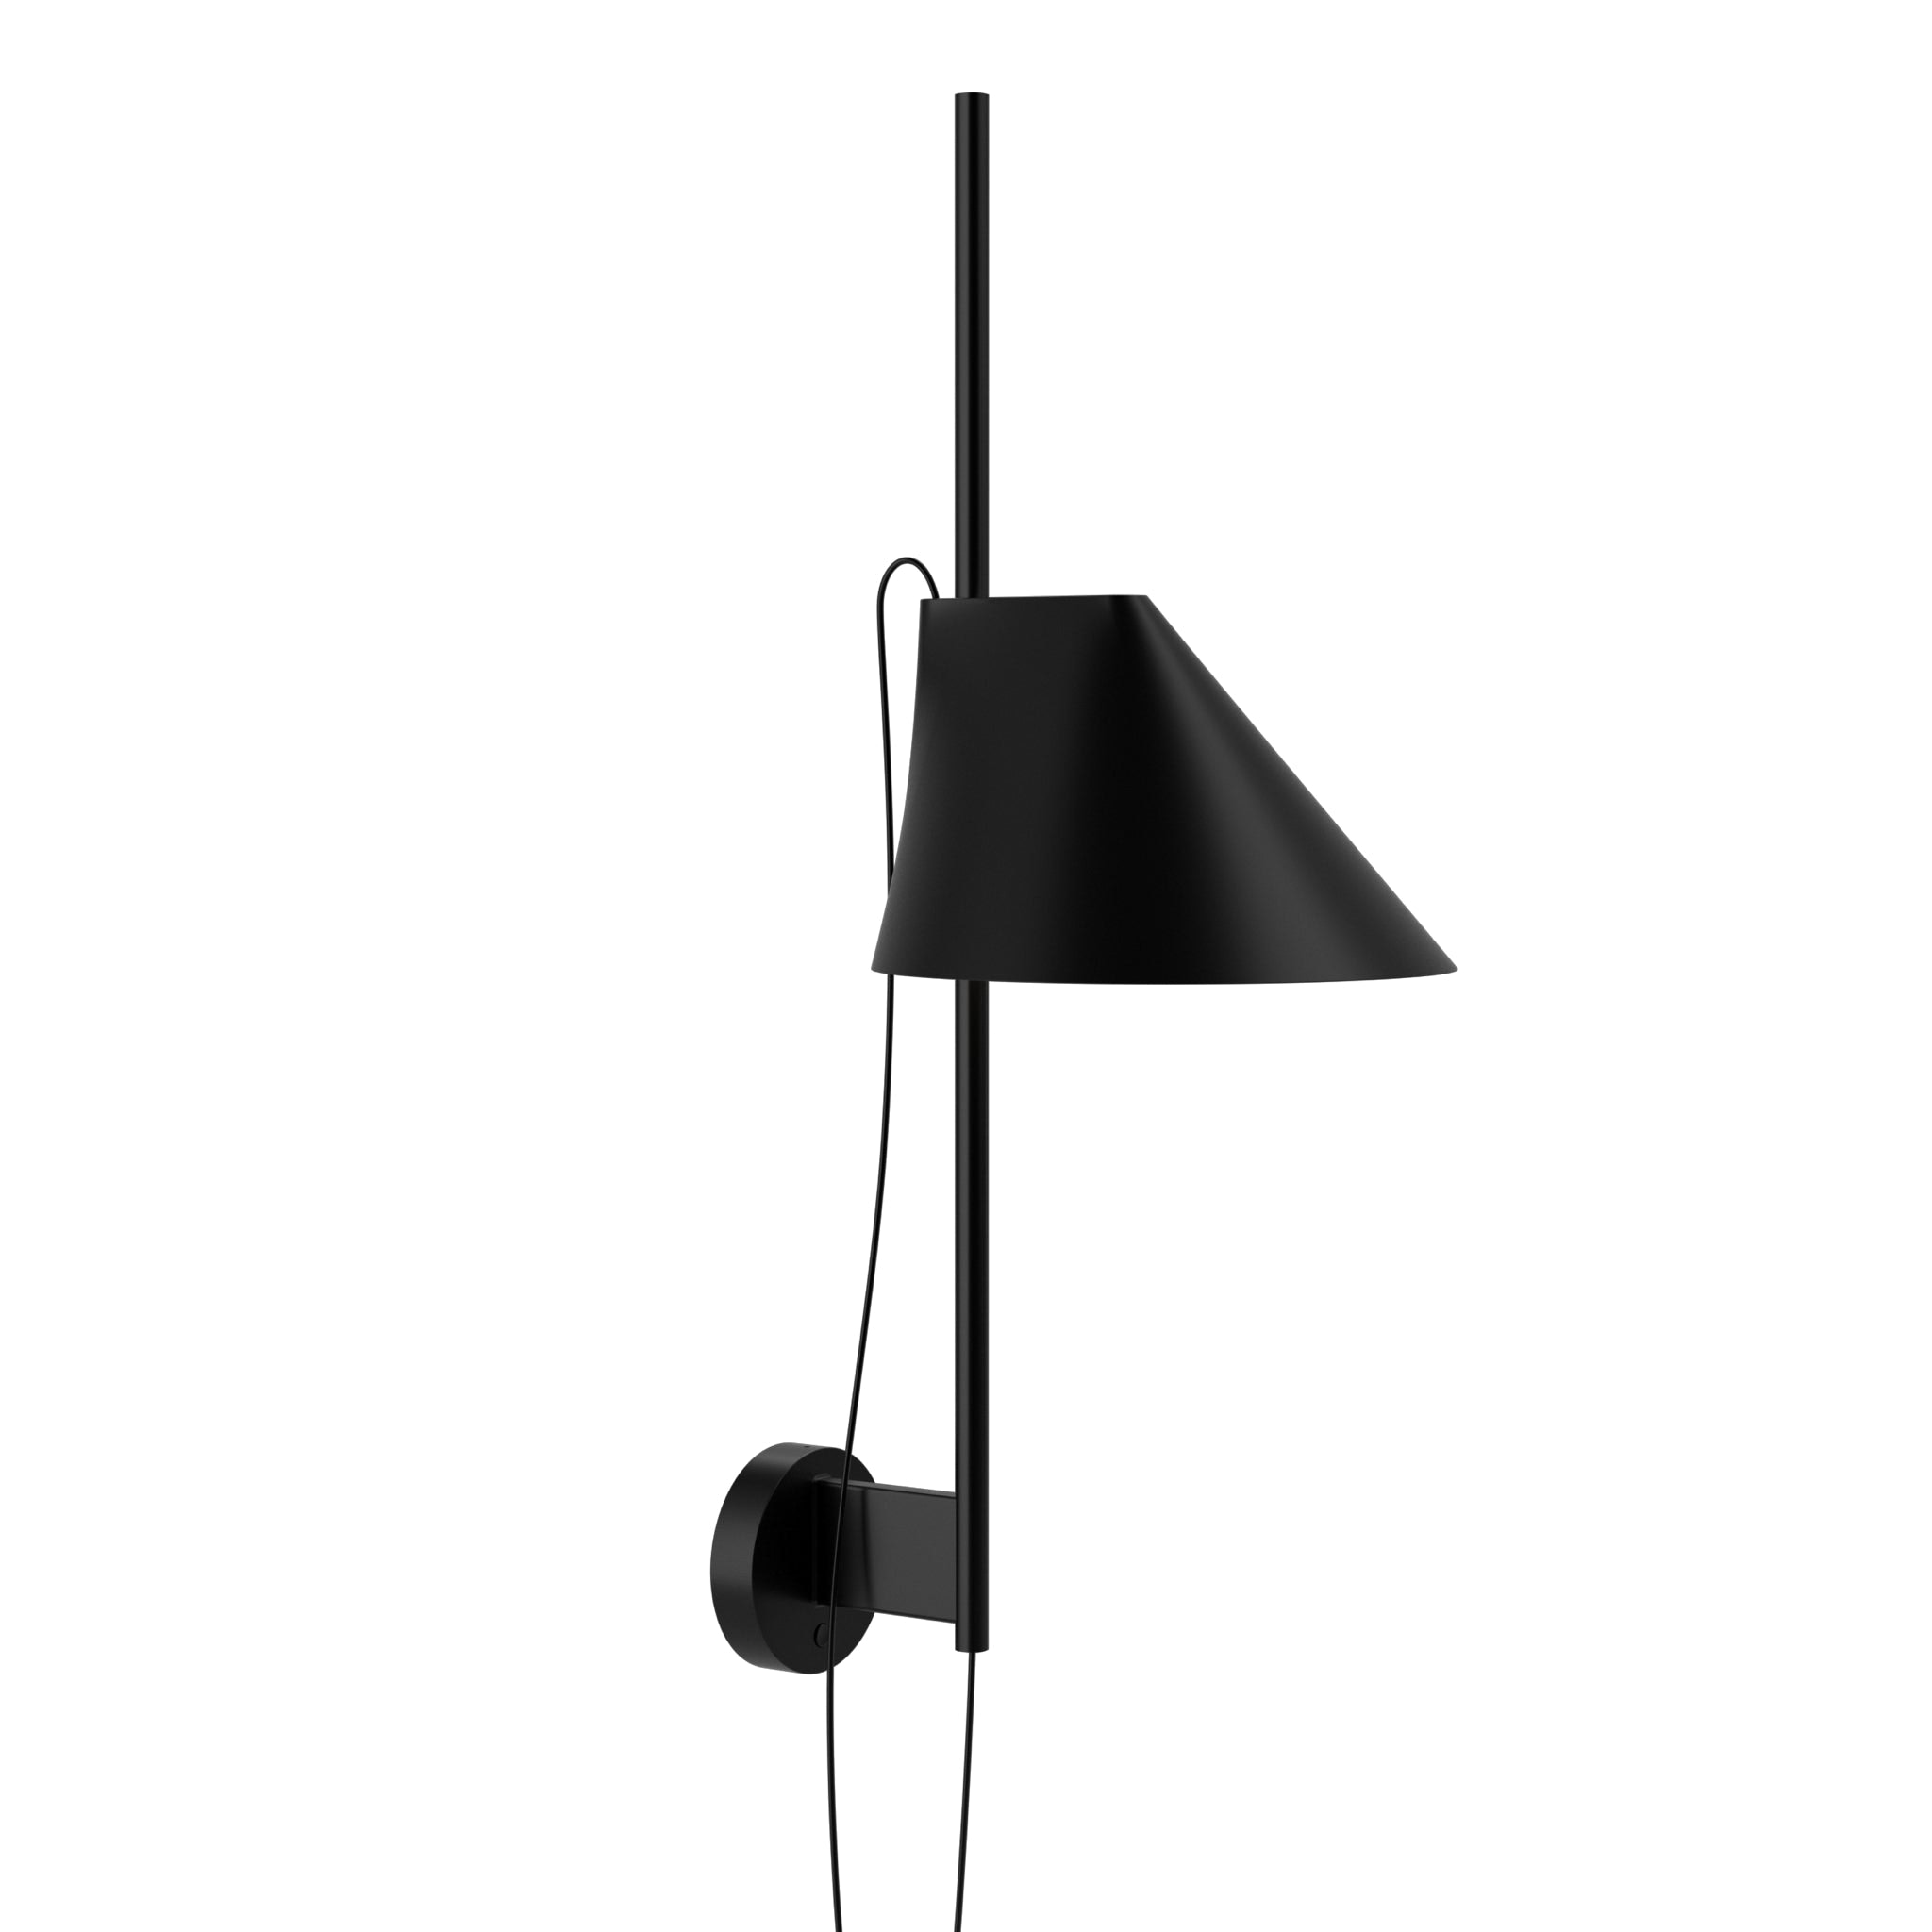 Yuh Wall Lamp by Louis Poulsen